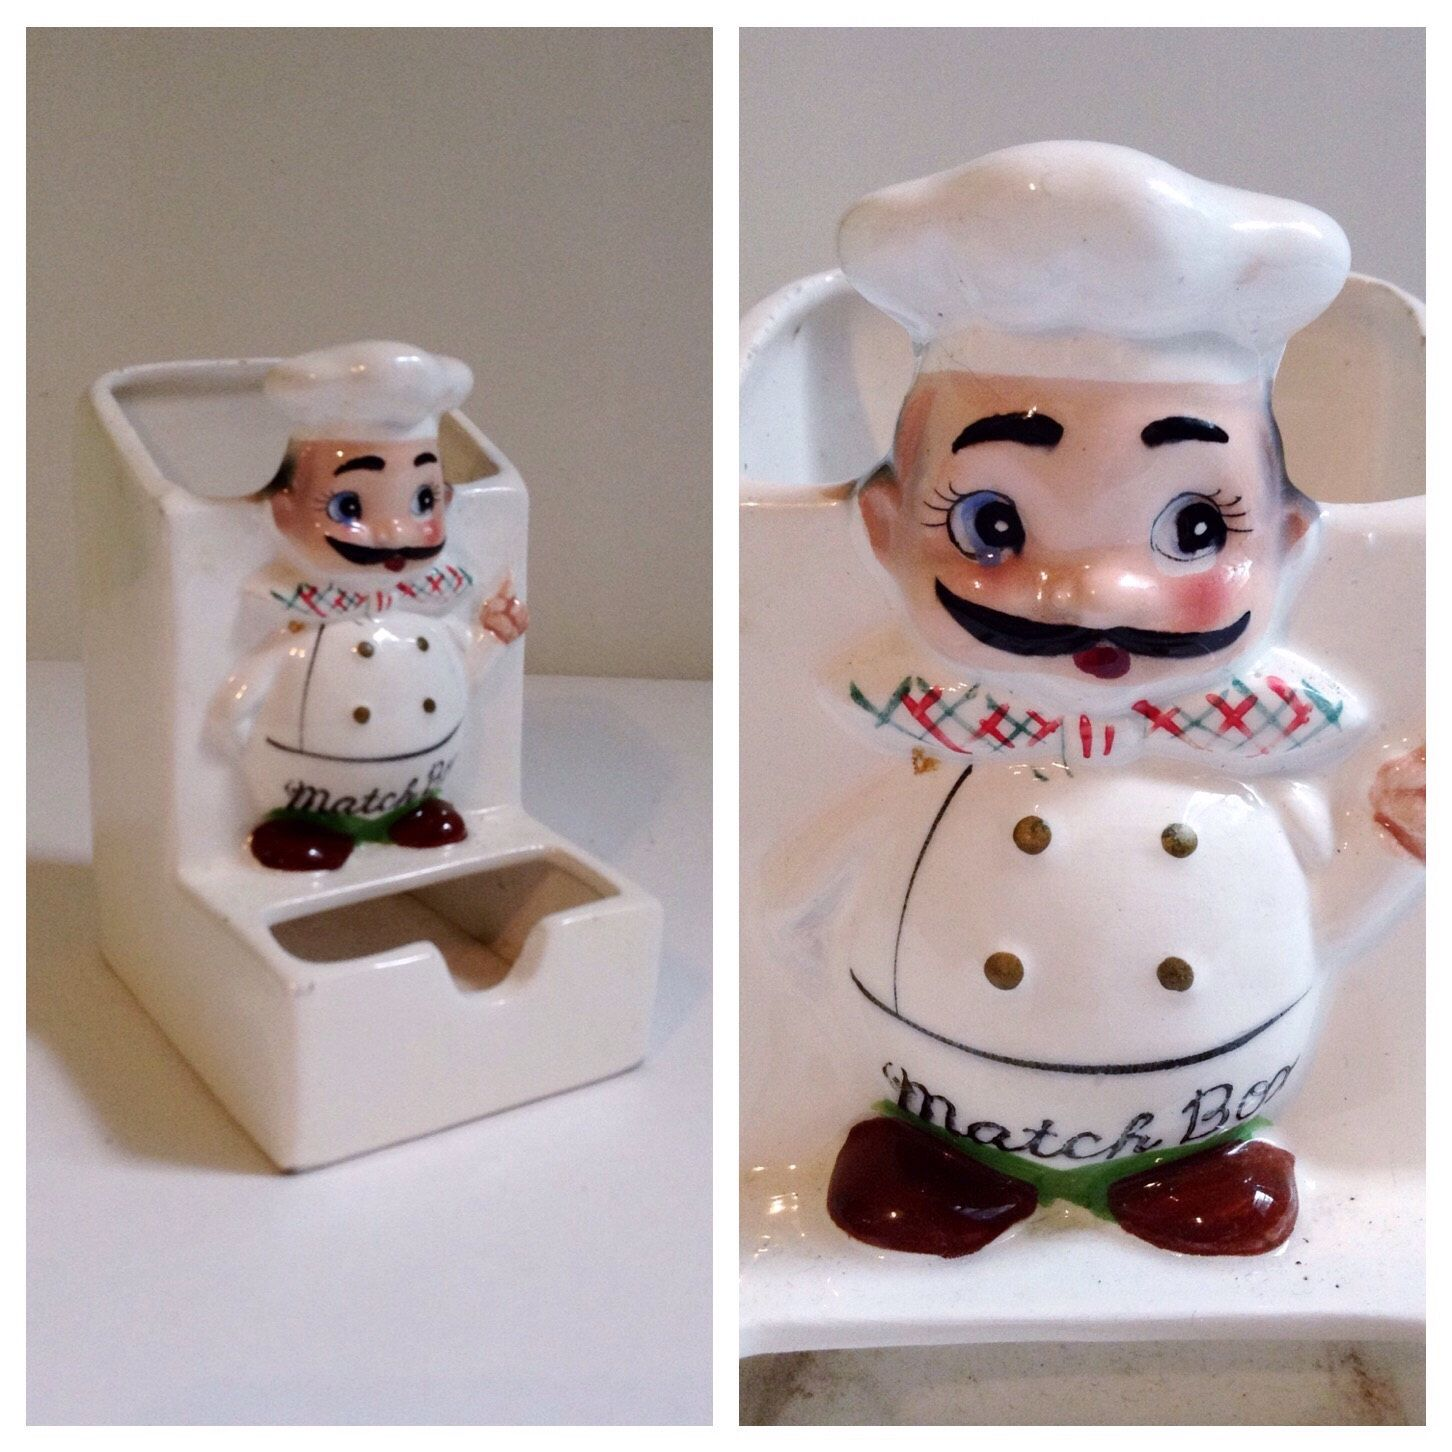 Attractive Match Box Holder Kitchen Decor Little Chef Ceramic Box Hanging Hanger  Italian Moustache By PartyPoodlesVintage On